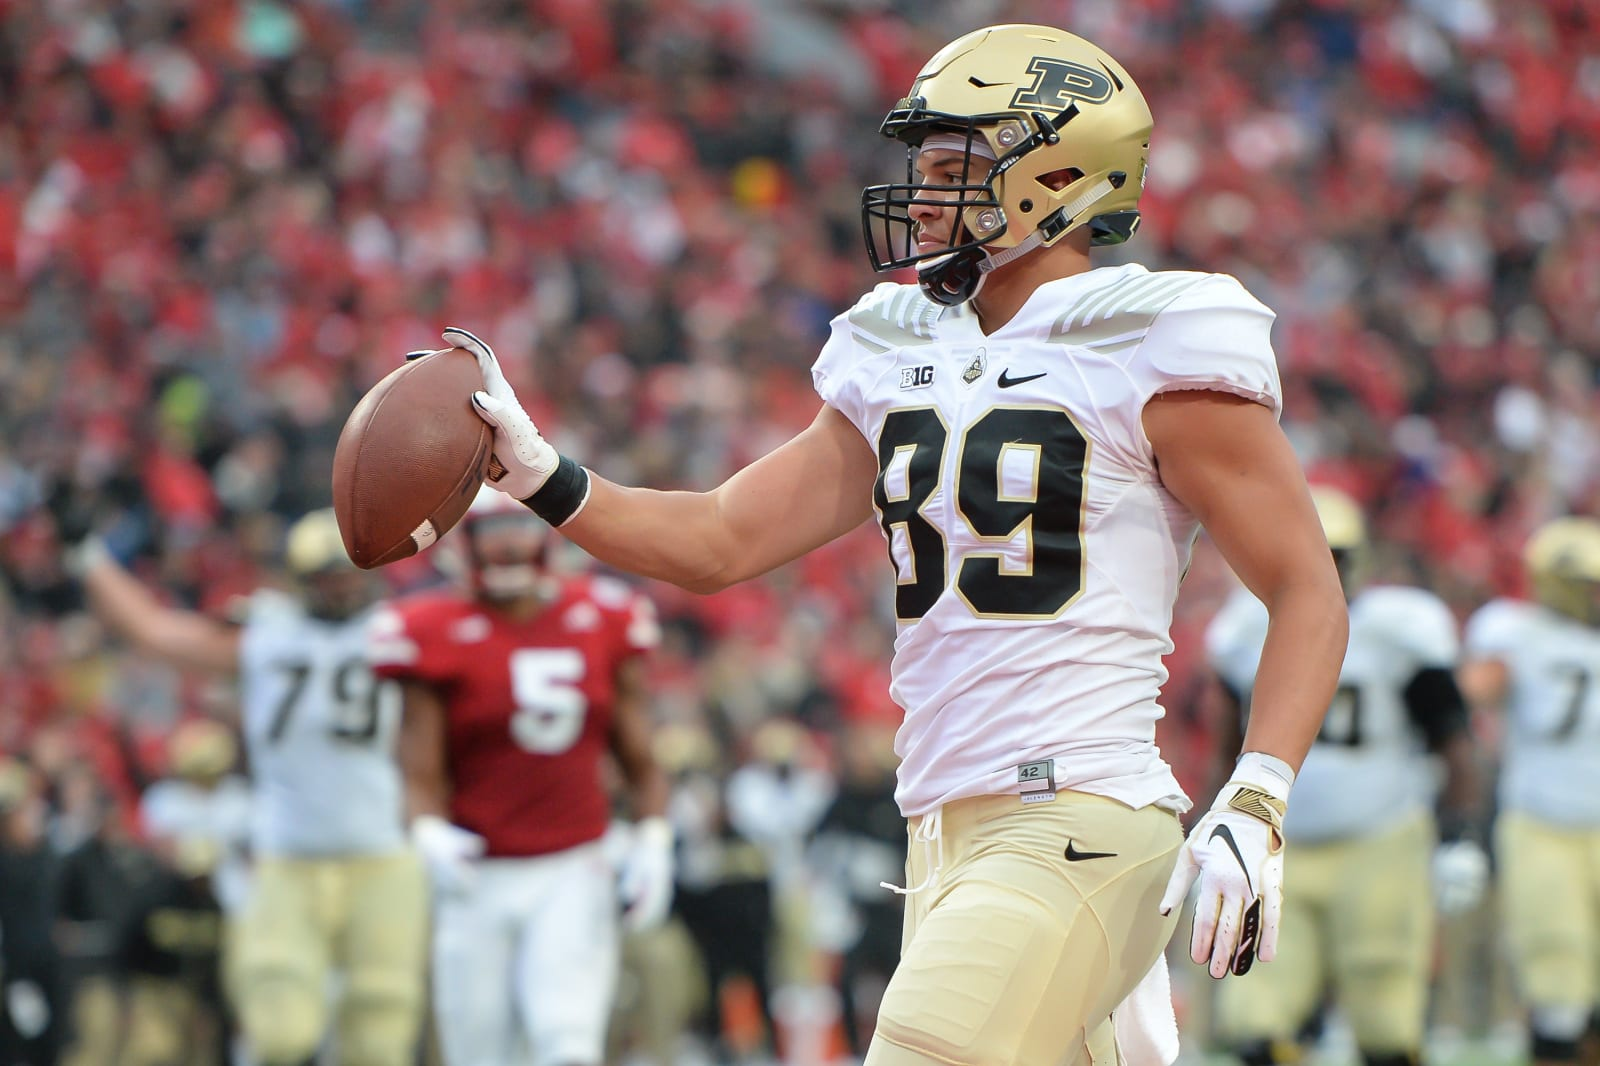 2020 NFL Mock Draft: First round projections after Week 1 - Page 33